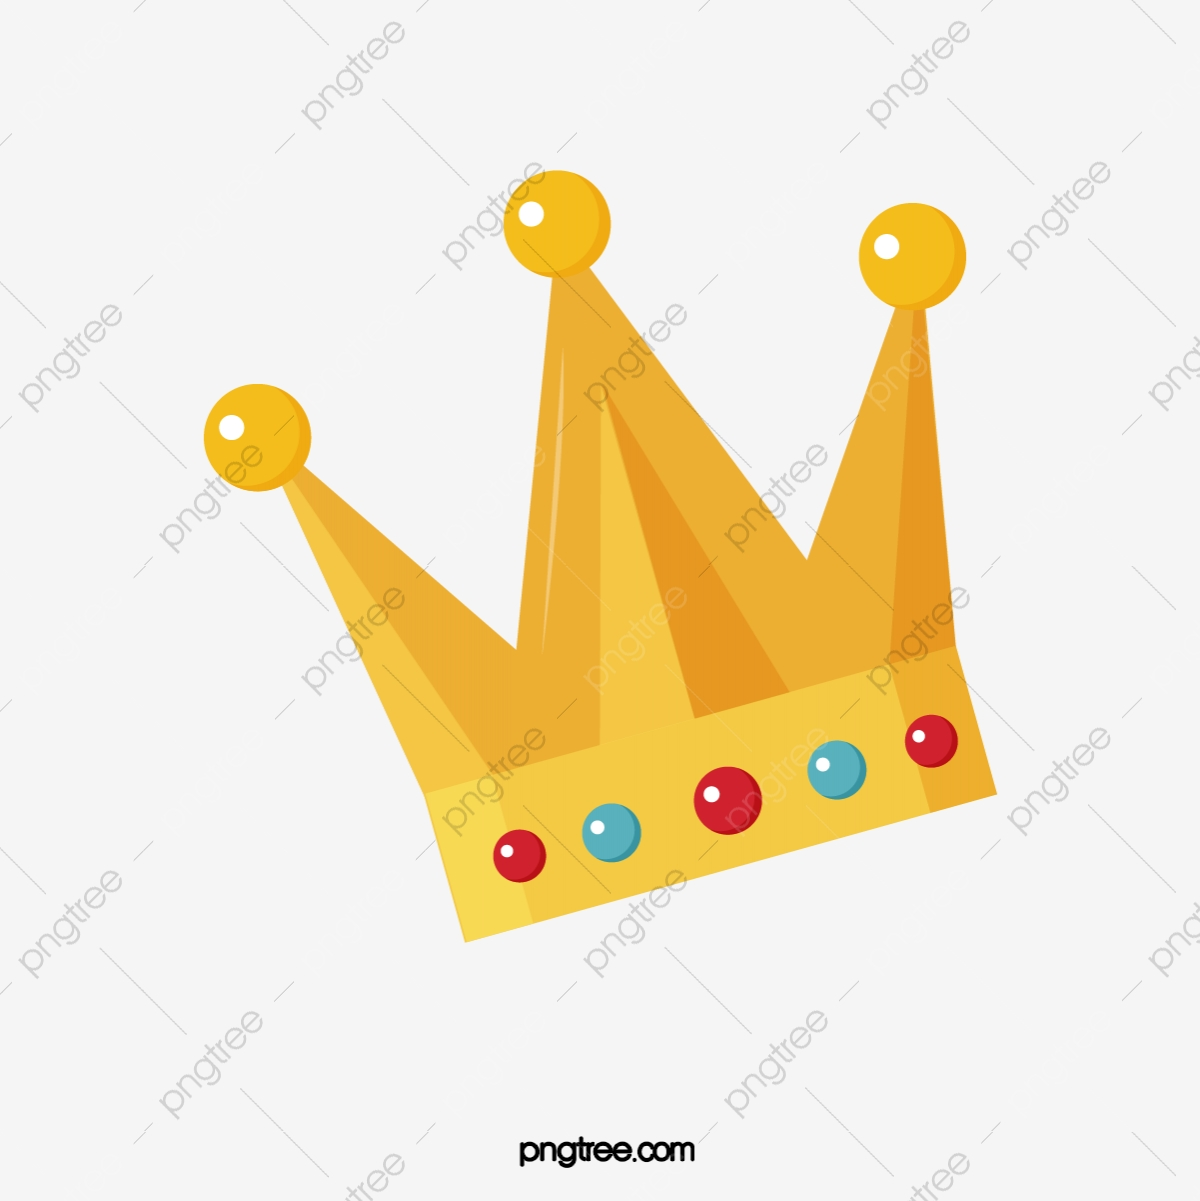 Cartoon Crown Png Images Vector And Psd Files Free Download On Pngtree Choose from over a million free vectors, clipart graphics, vector art images, design templates, and illustrations created by artists worldwide! https pngtree com freepng cute crown hand drawn crown cartoon crown 5335090 html